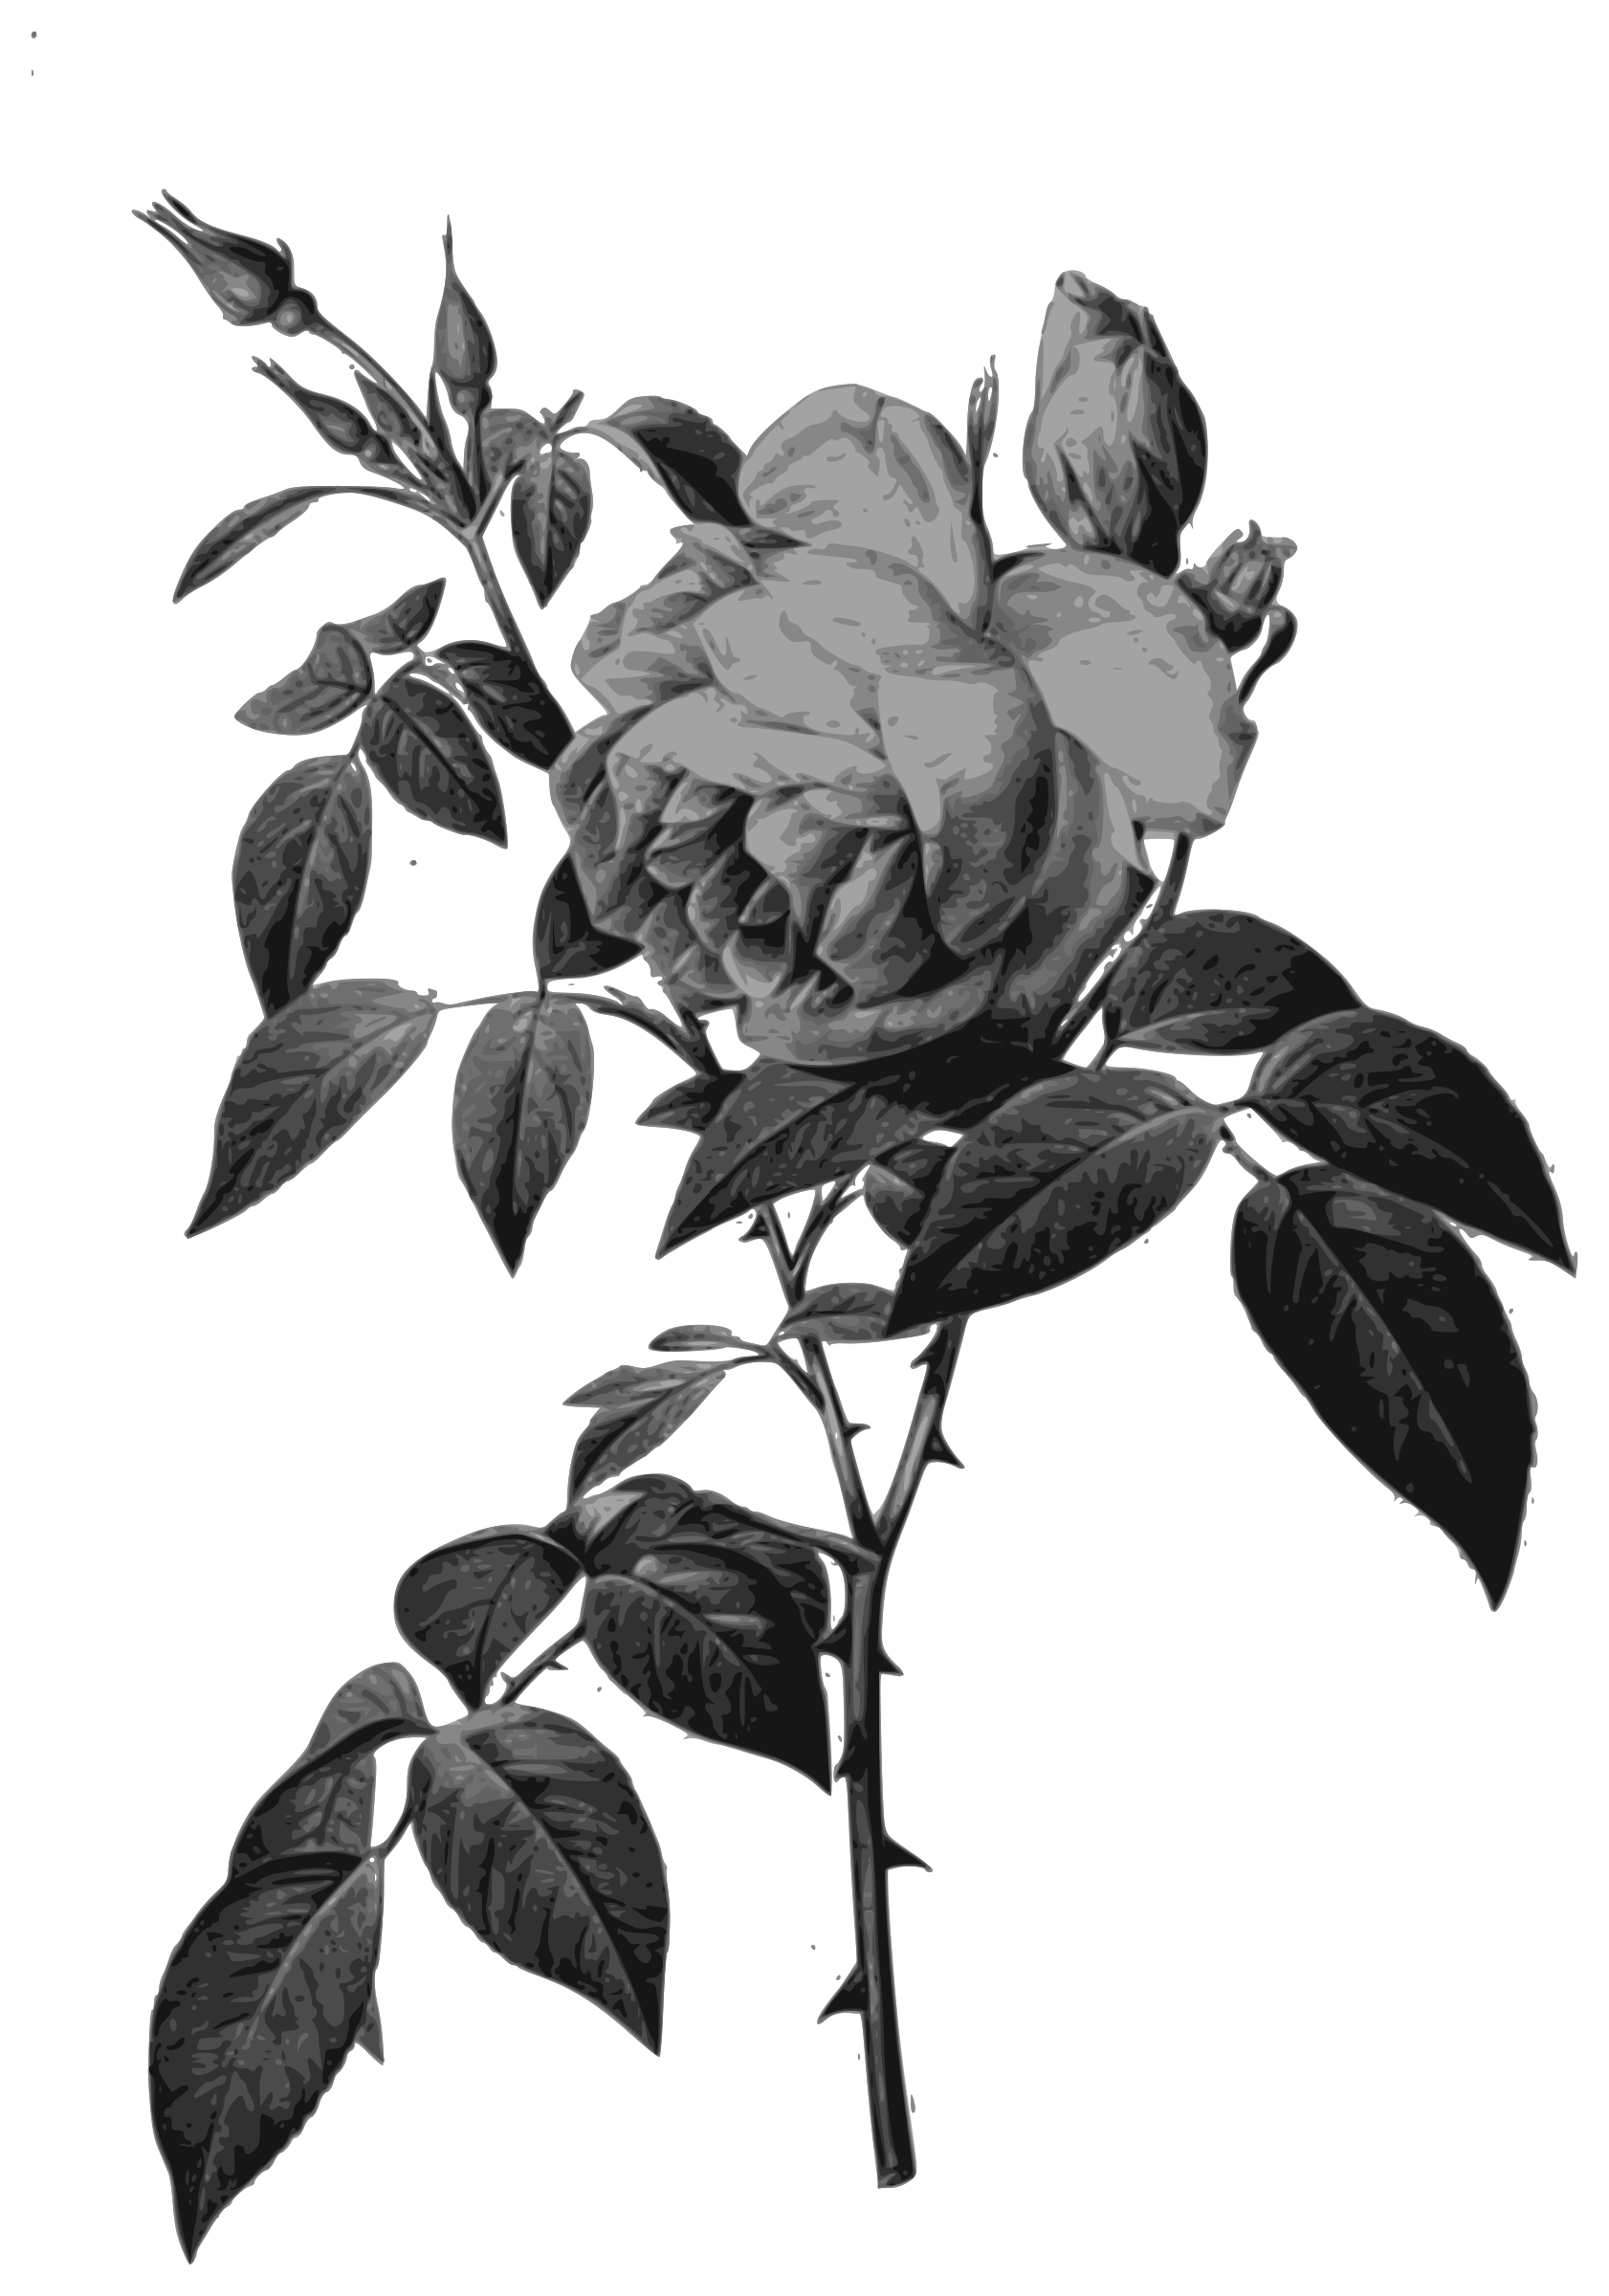 Redoute - Rosa indica fragrans - grayscale by warszawianka